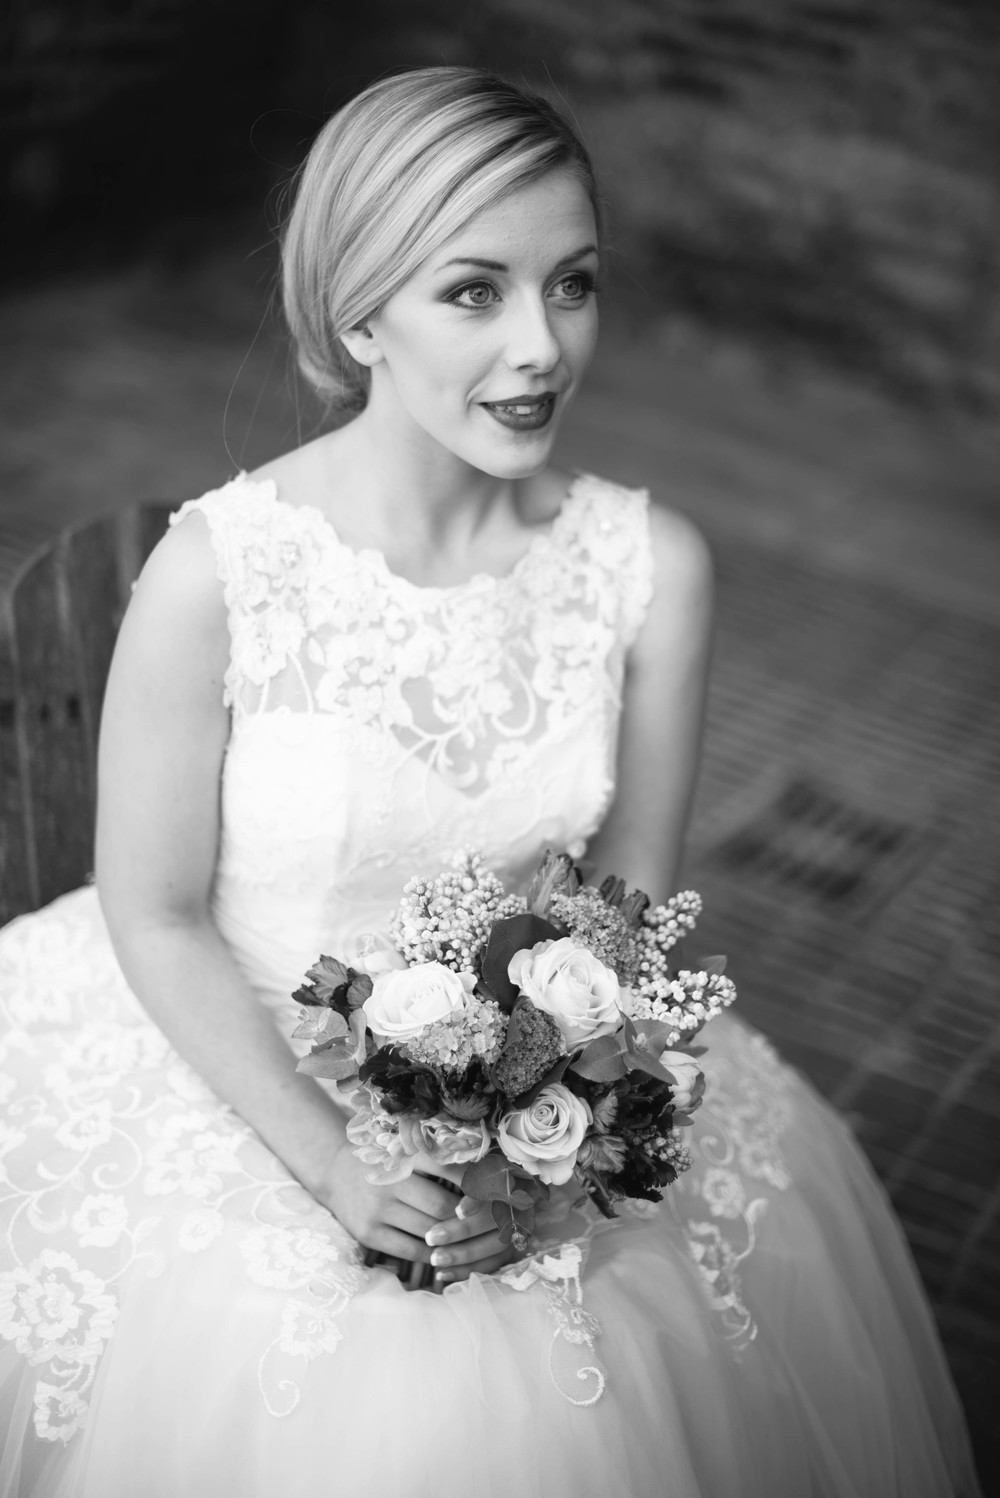 AspireWeddingShoot-11.jpg